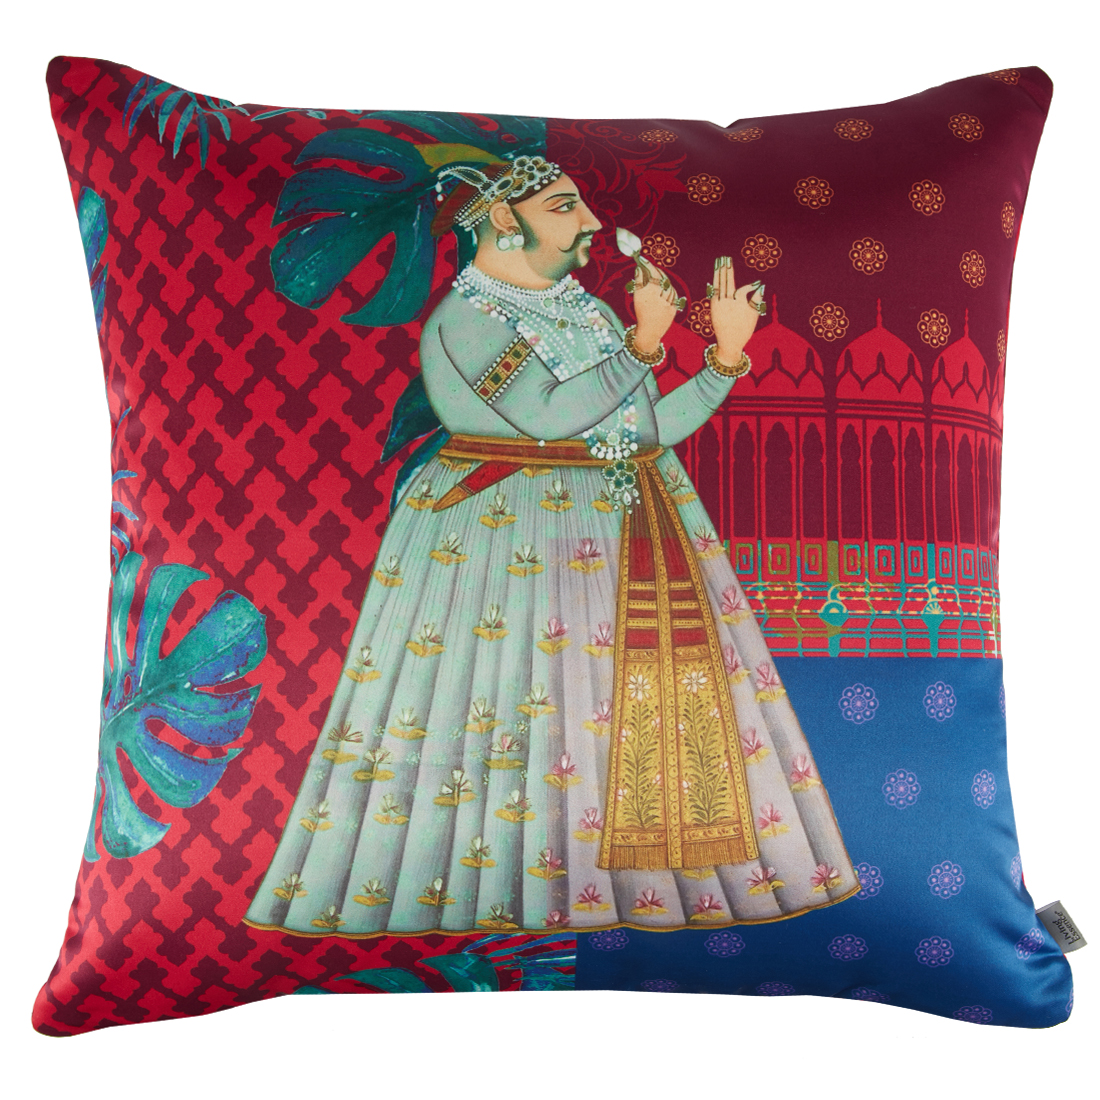 Digital Cushion Cover Raja Cushion Covers in Poly Satin Colour by Living Essence